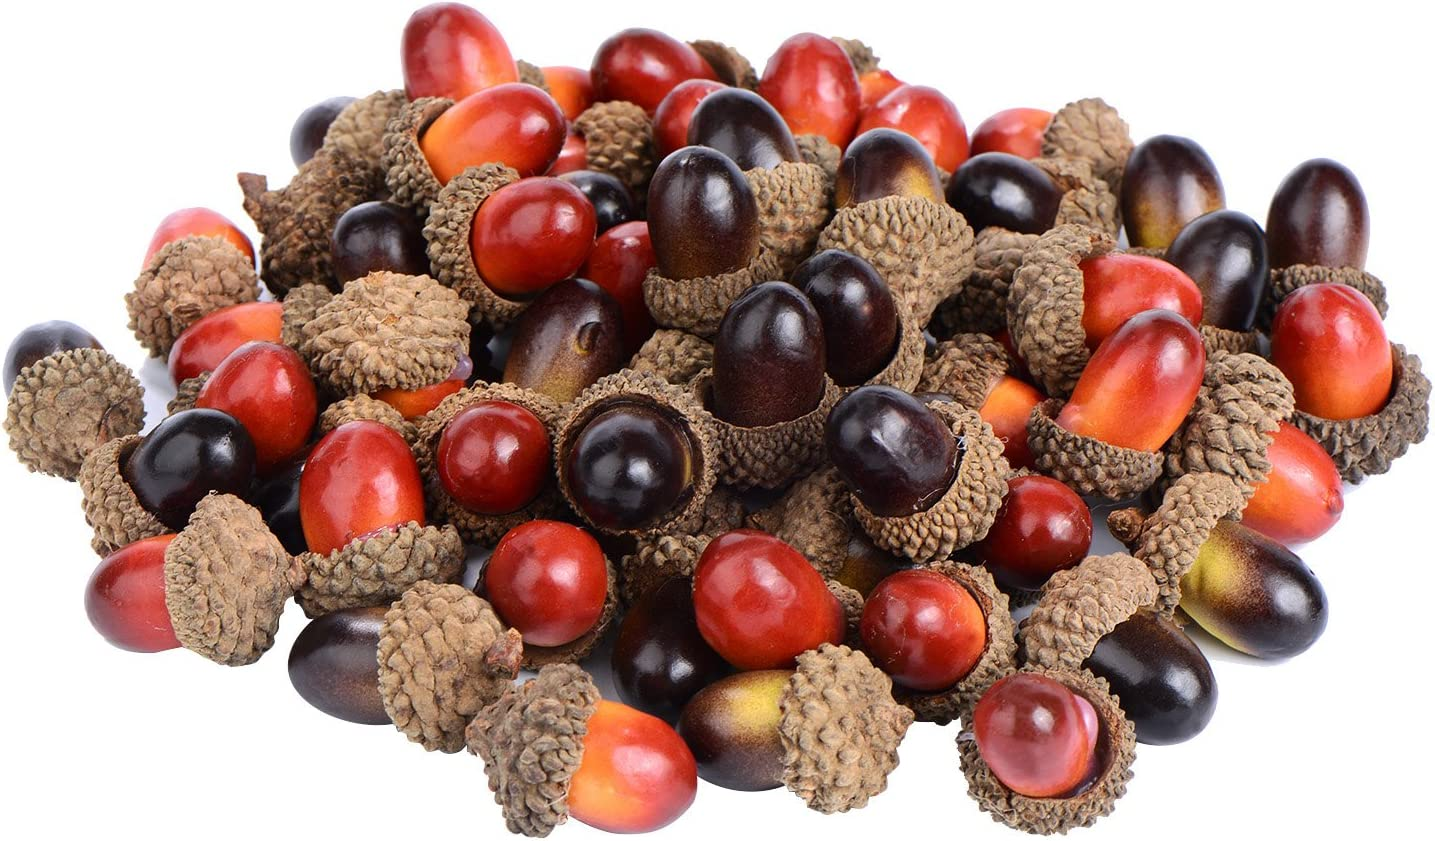 Sumind 70 Pieces Craft Acorns Artificial Acorn Decor Fake Fruit Props Acorns Decoration for DIY Home Party Festival (2 Colors)